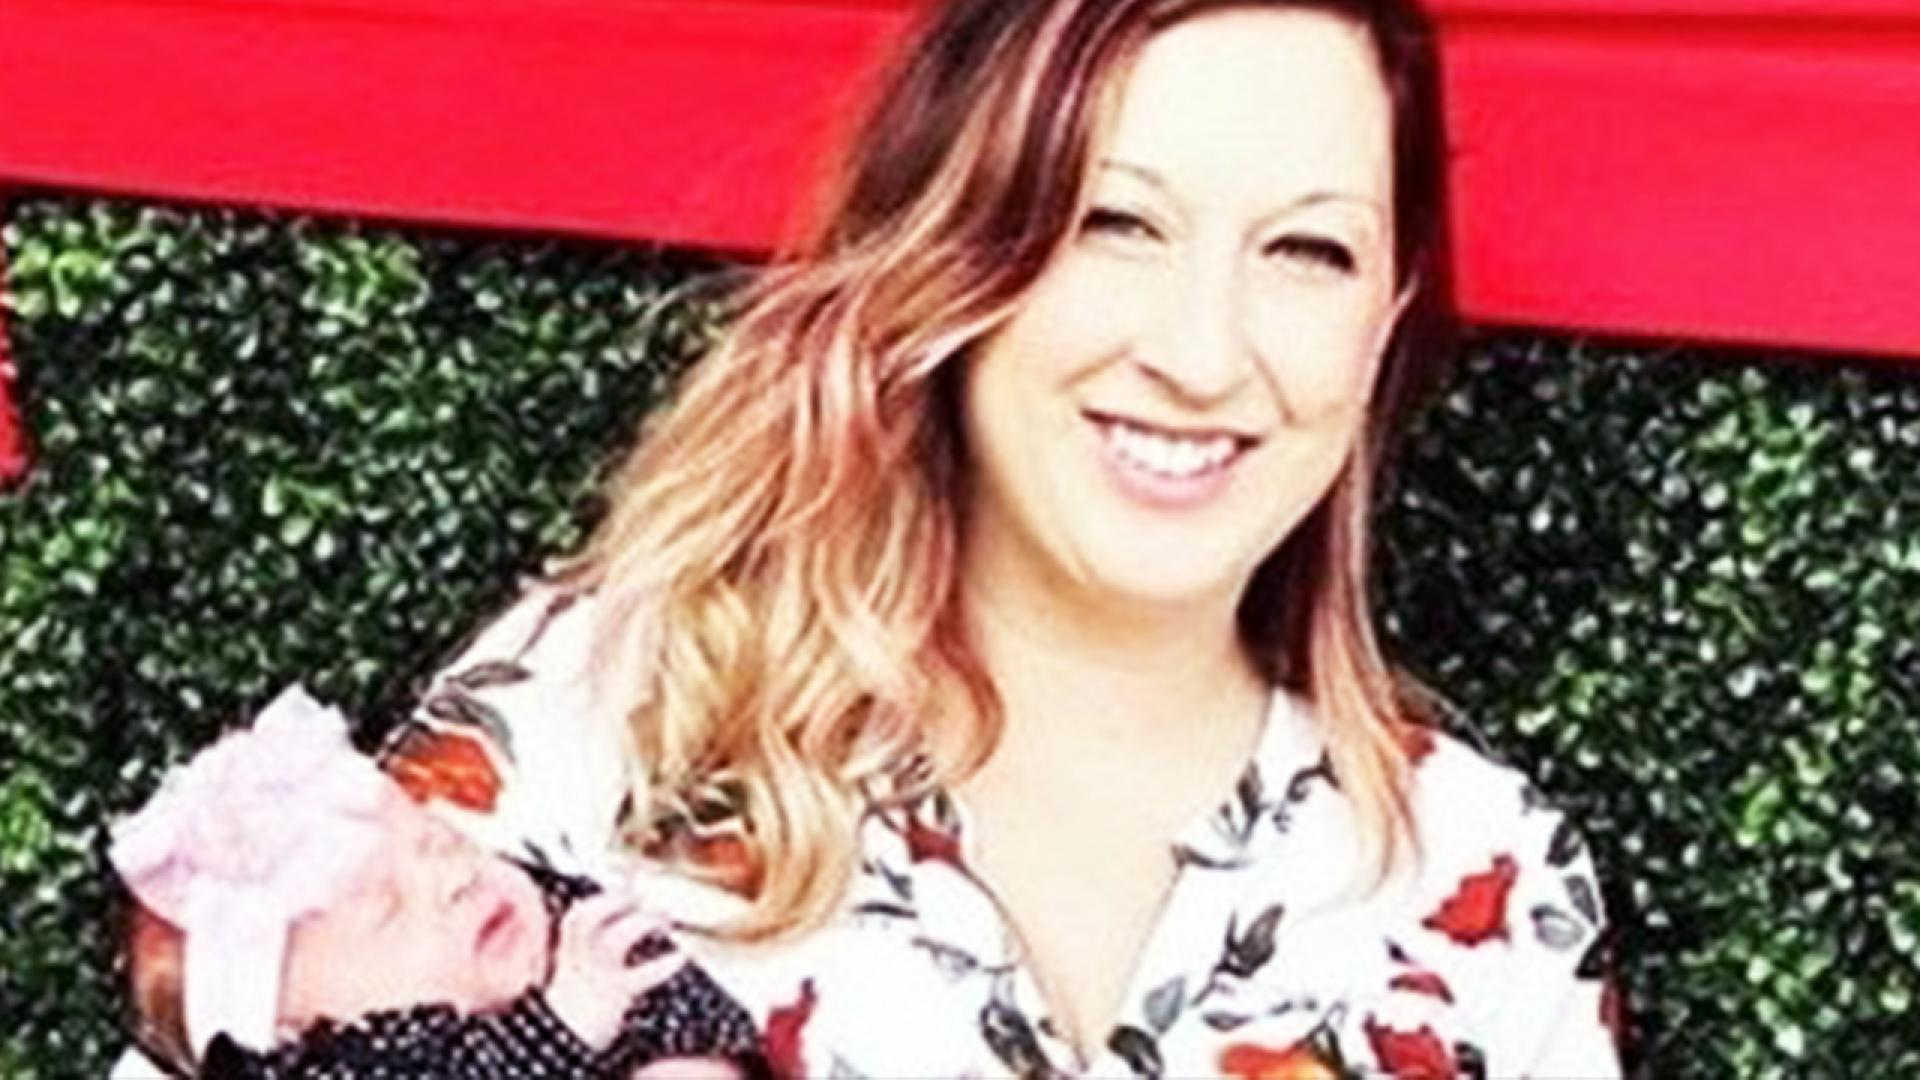 Texas mom Heidi Broussard, 33, and her 2-week-old daughter were last seen at the Cowan Elementary School in Austin Thursday morning.